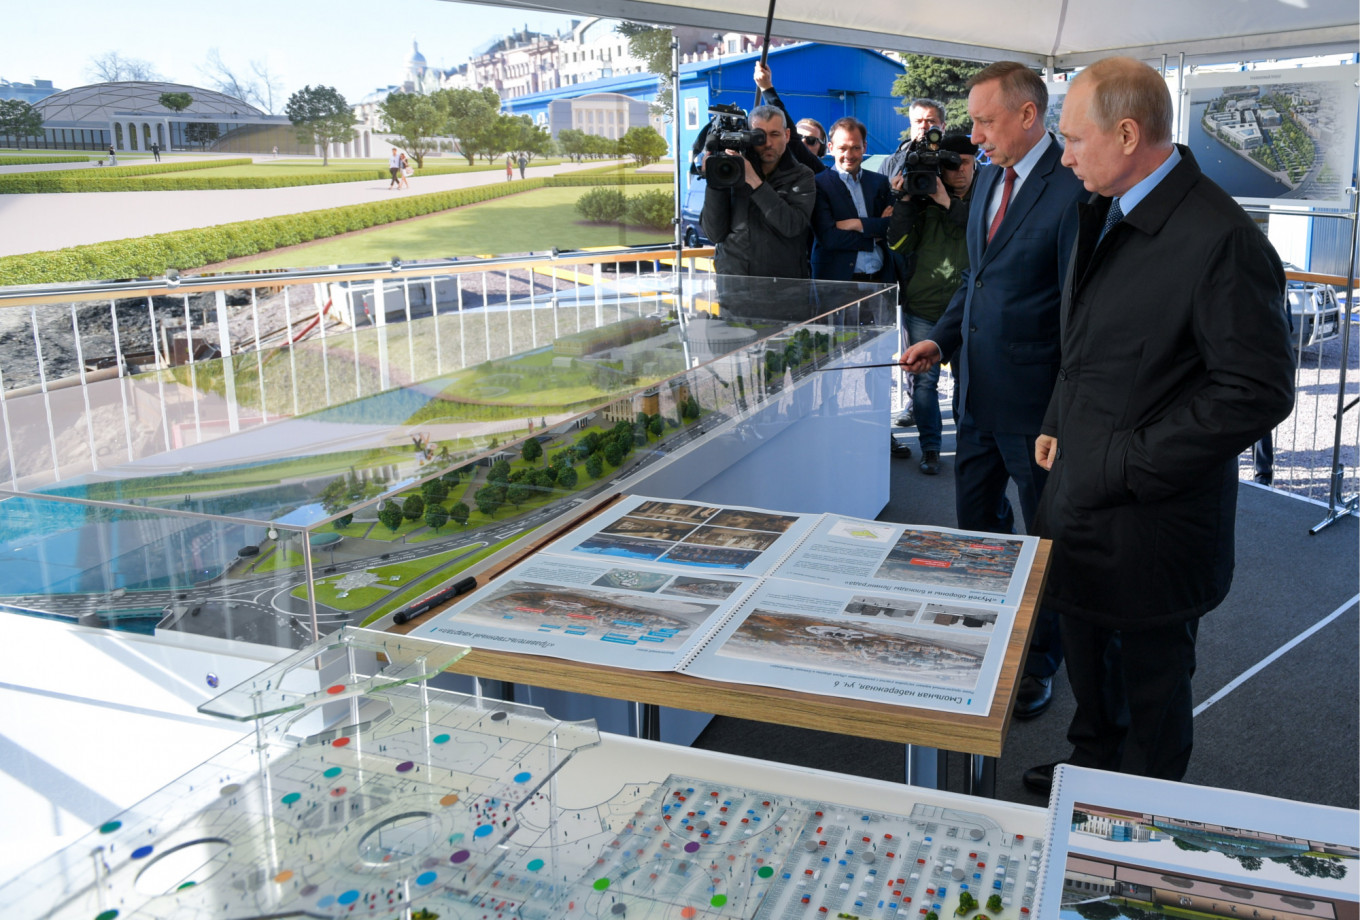 Beglov showing plans for a new Art Park to President Putin.				 				Alexei Druzhinin / TASS